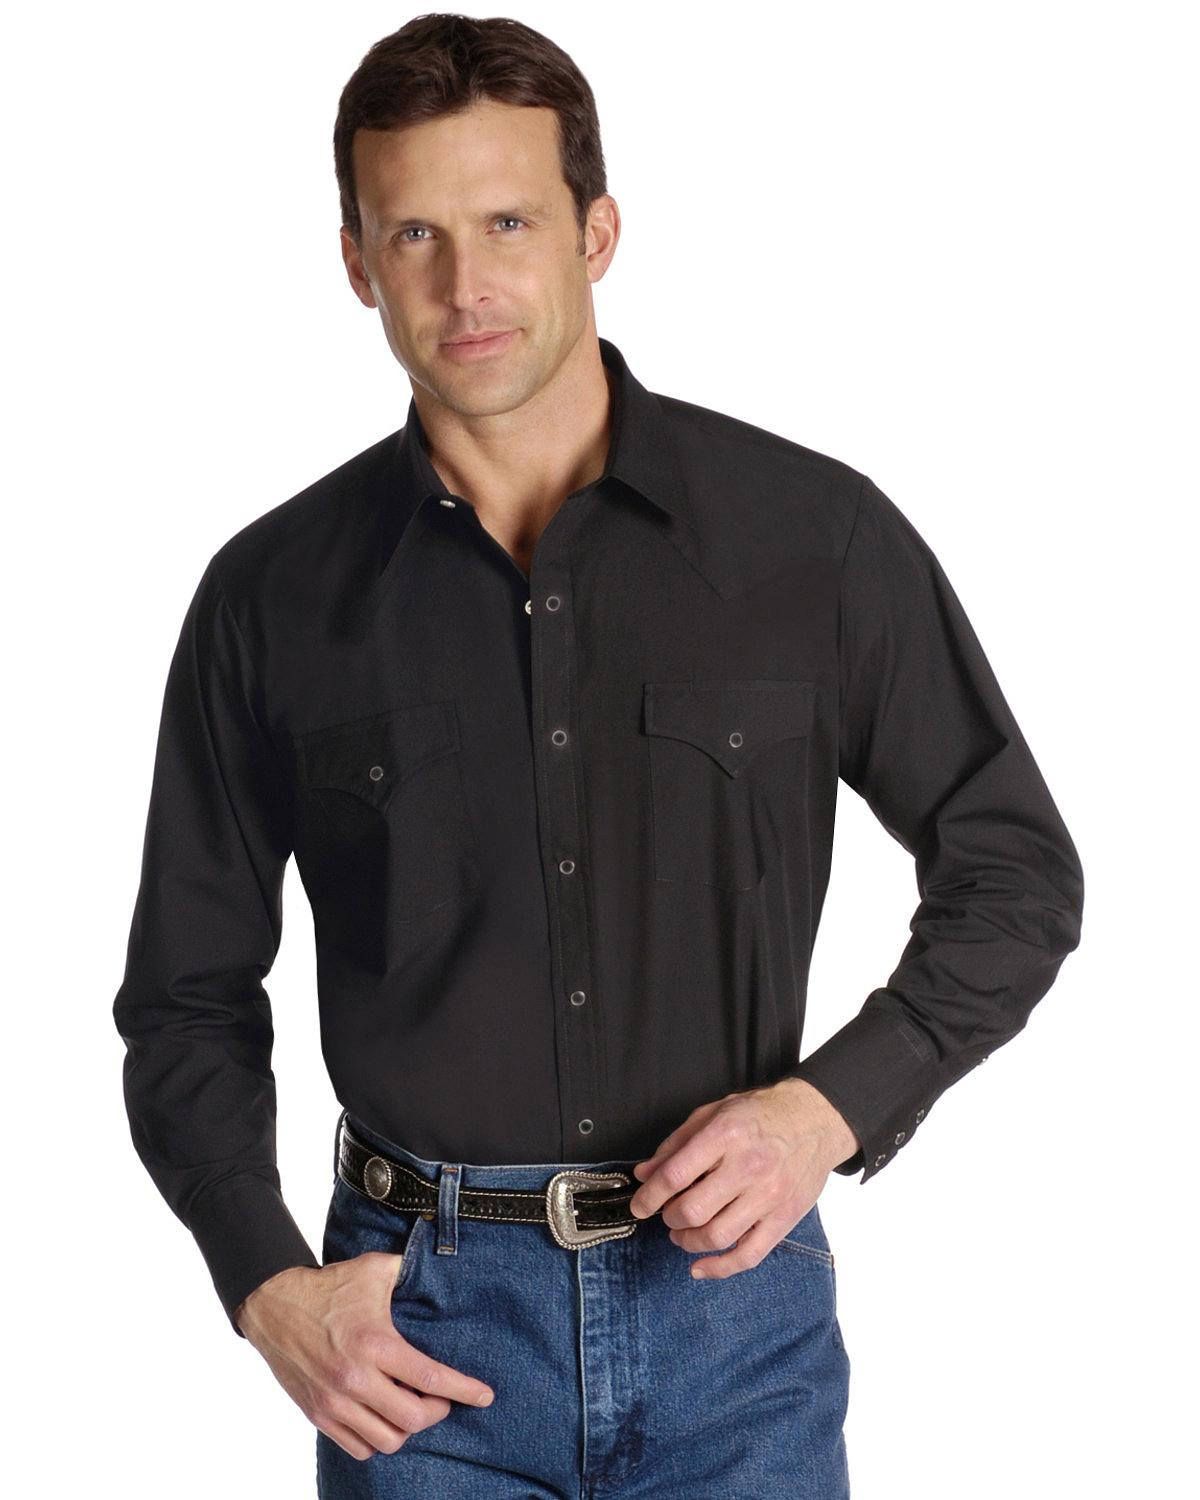 cc7f30f3 Ely Cattleman Men's Long Sleeve Solid Western Shirt Big and Tall -  15201905-89t 2xlt Black 2xt. About this product. Picture 1 of 2; Picture 2  of 2